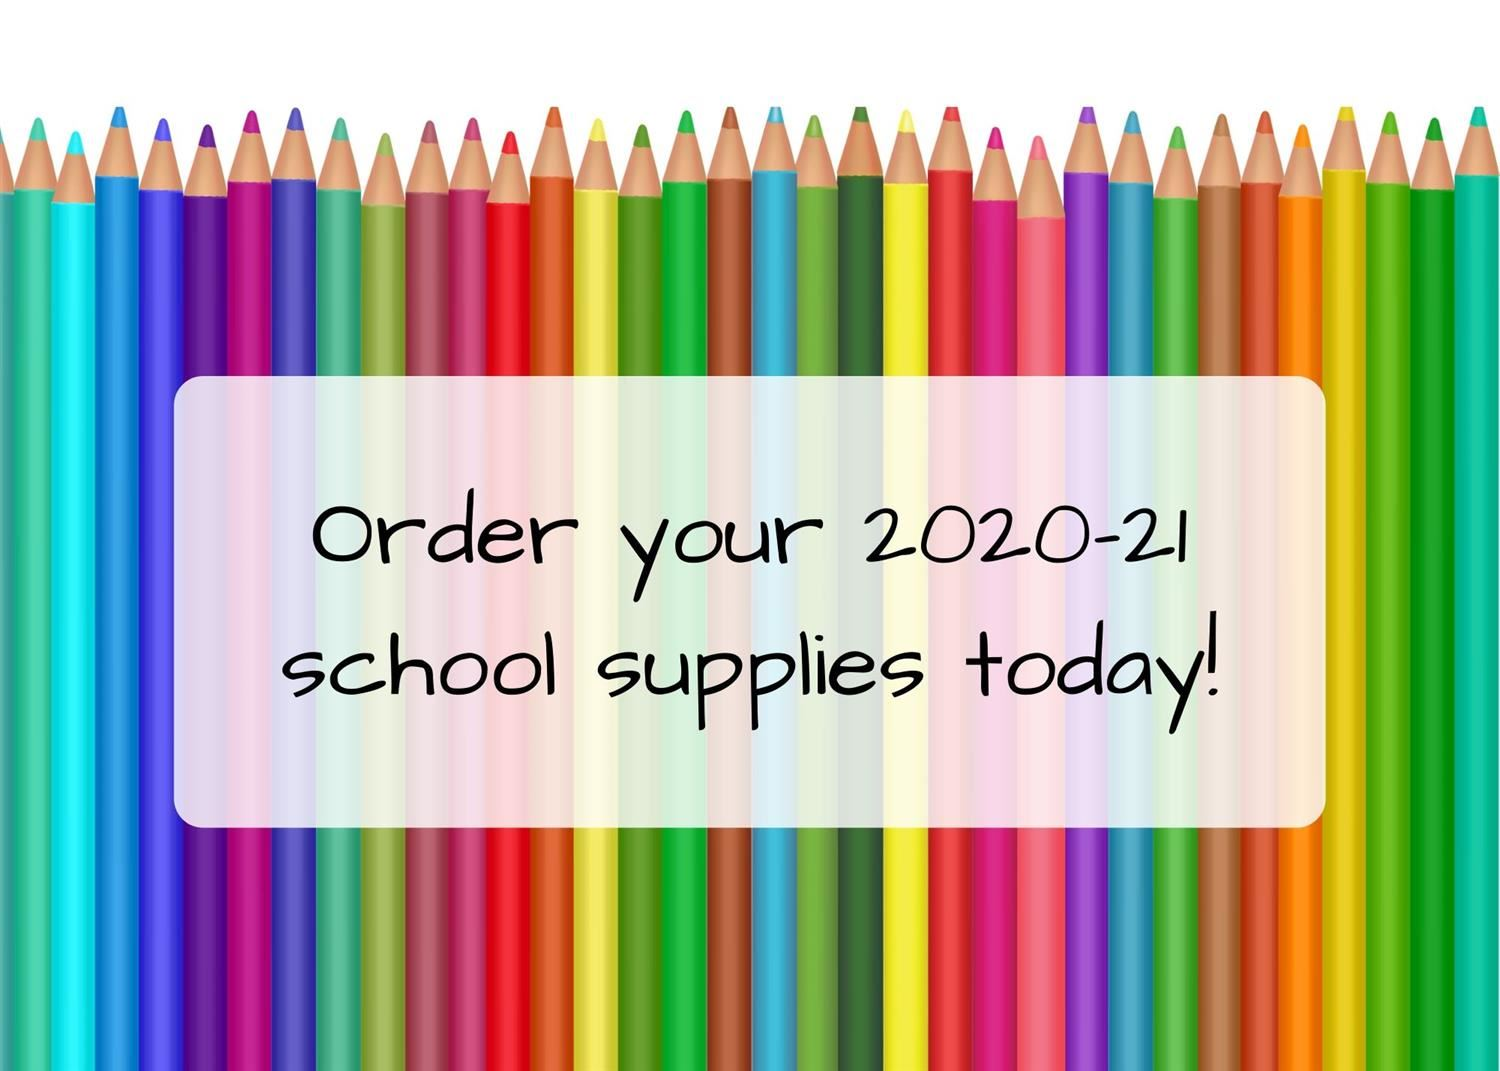 2020-21 School Supply Ordering is Now Open!